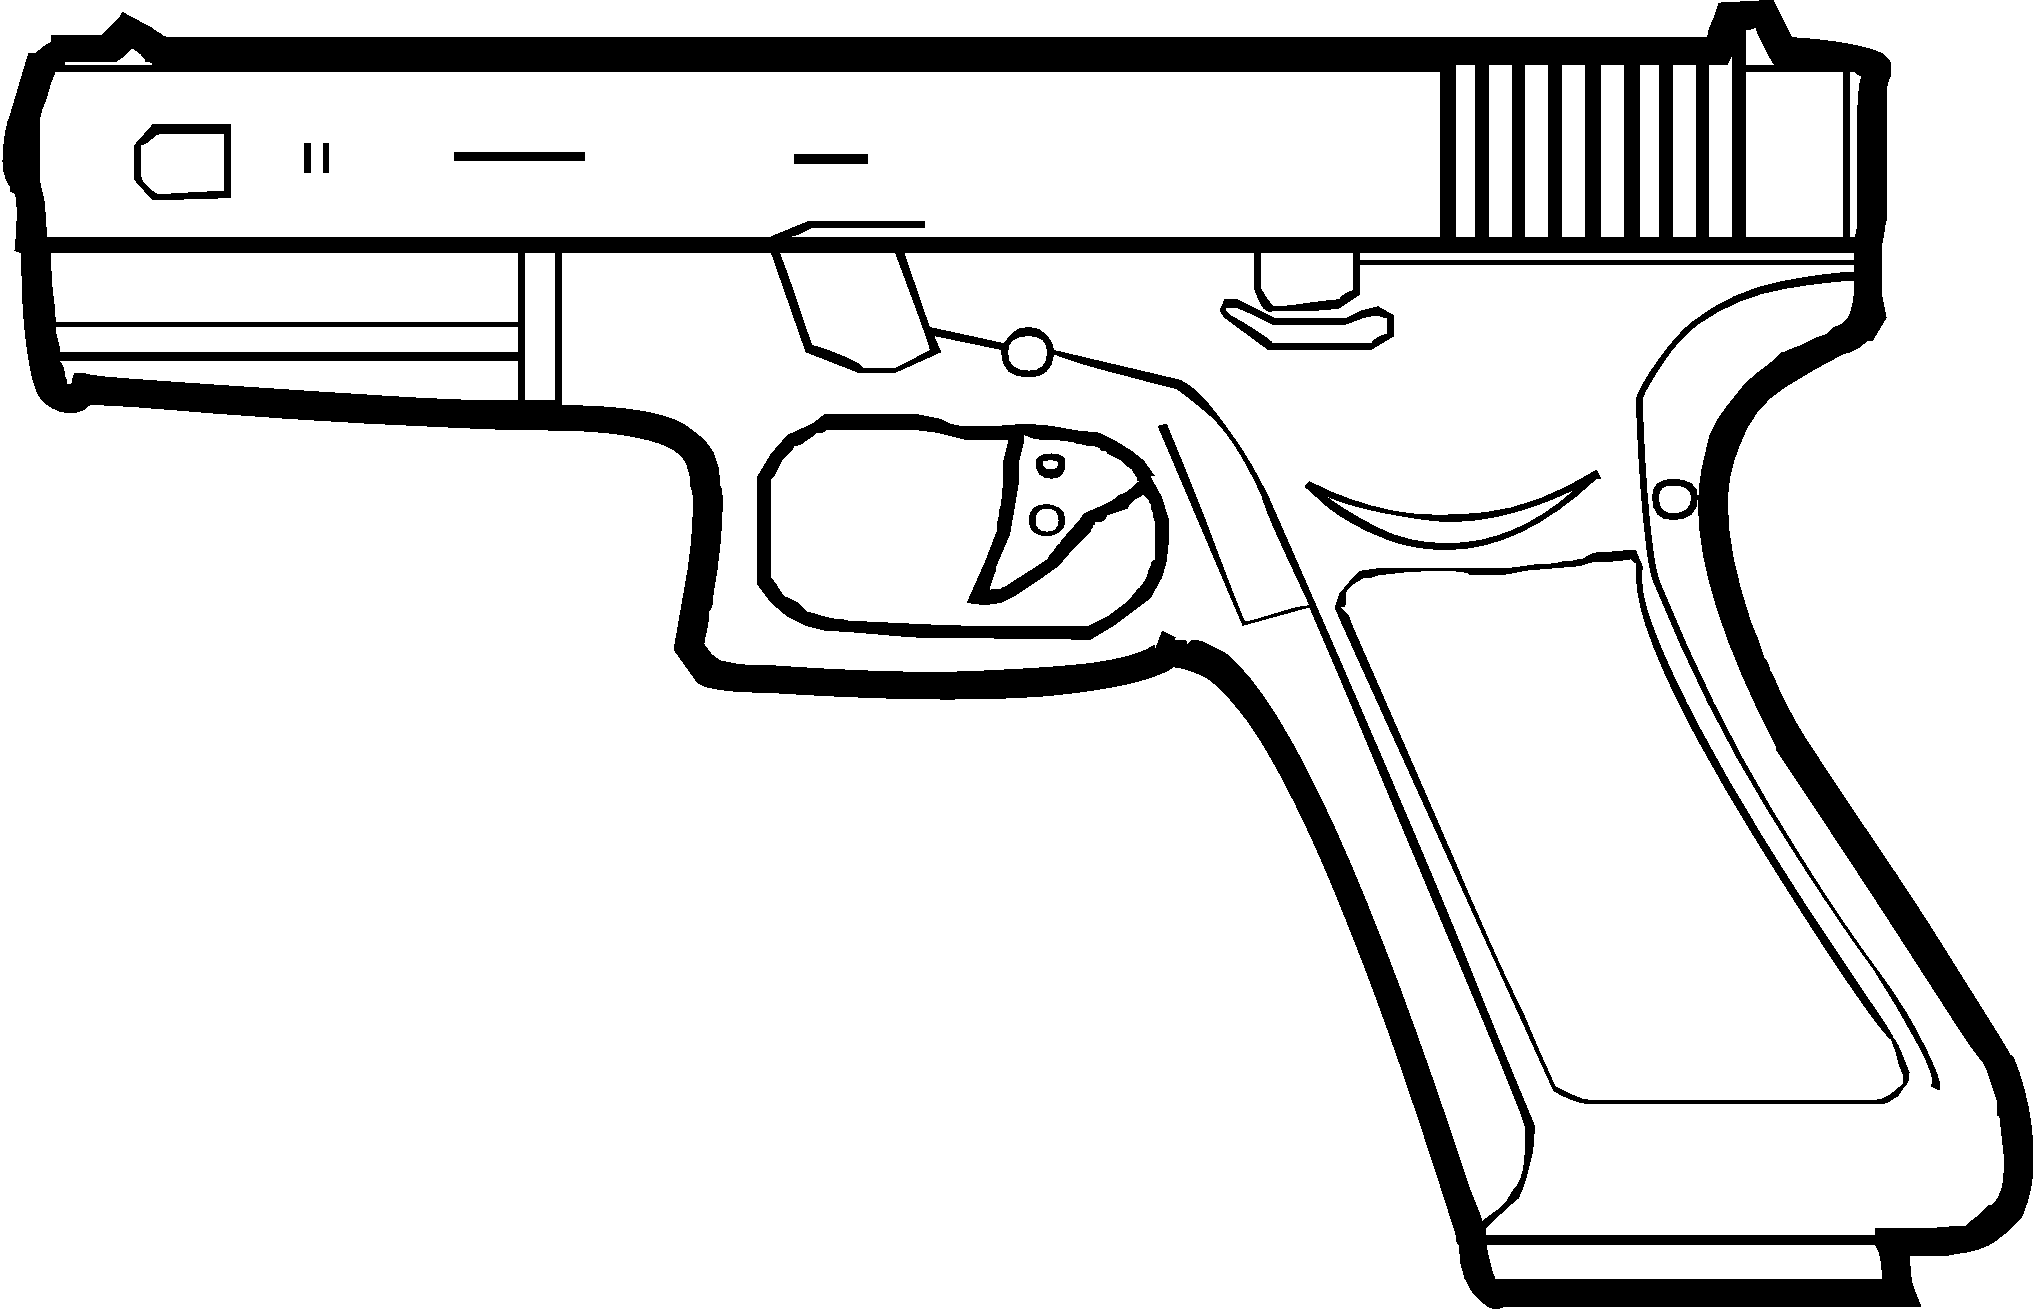 Star wars gun clipart clip art transparent stock Weapon Clipart outline - Free Clipart on Dumielauxepices.net clip art transparent stock